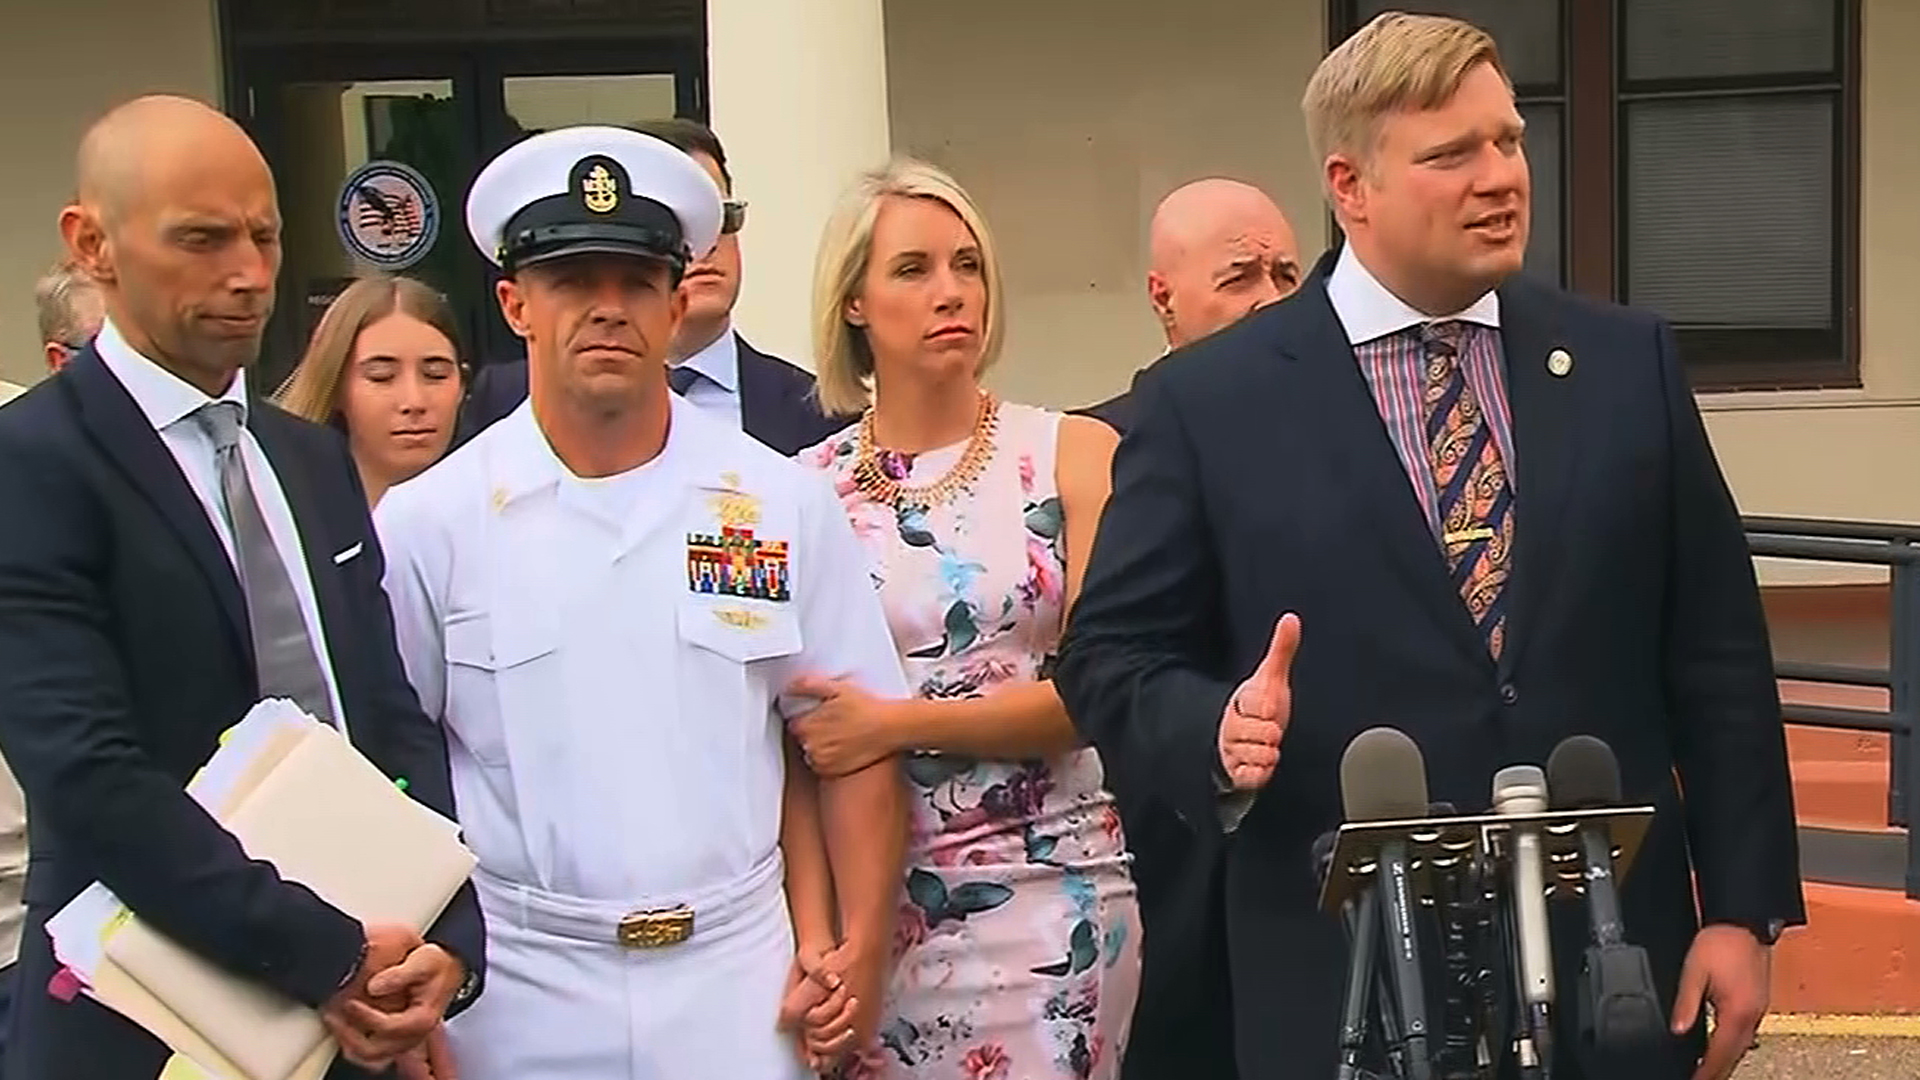 Navy Special Operations Chief Edward Gallagher, second from left, stands alongside his wife as his attorney Timothy Parlatore addresses the media following day three of the SEAL's war crimes trial in San Diego on June 20, 2019. (Credit: CNN)